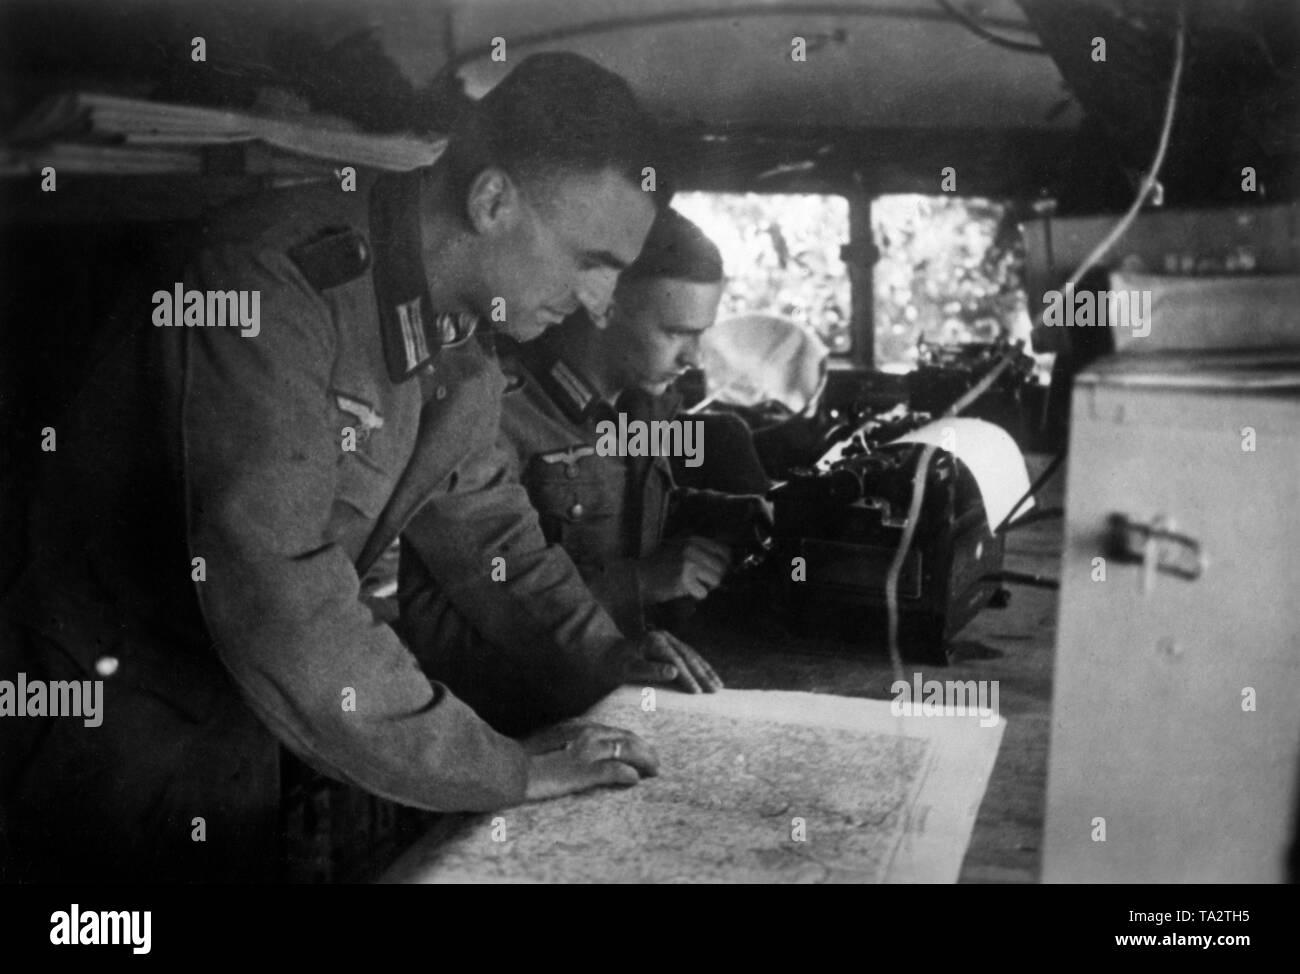 New results of the reconnaissance are compared with old maps. Photo: war reporter Utecht. Stock Photo